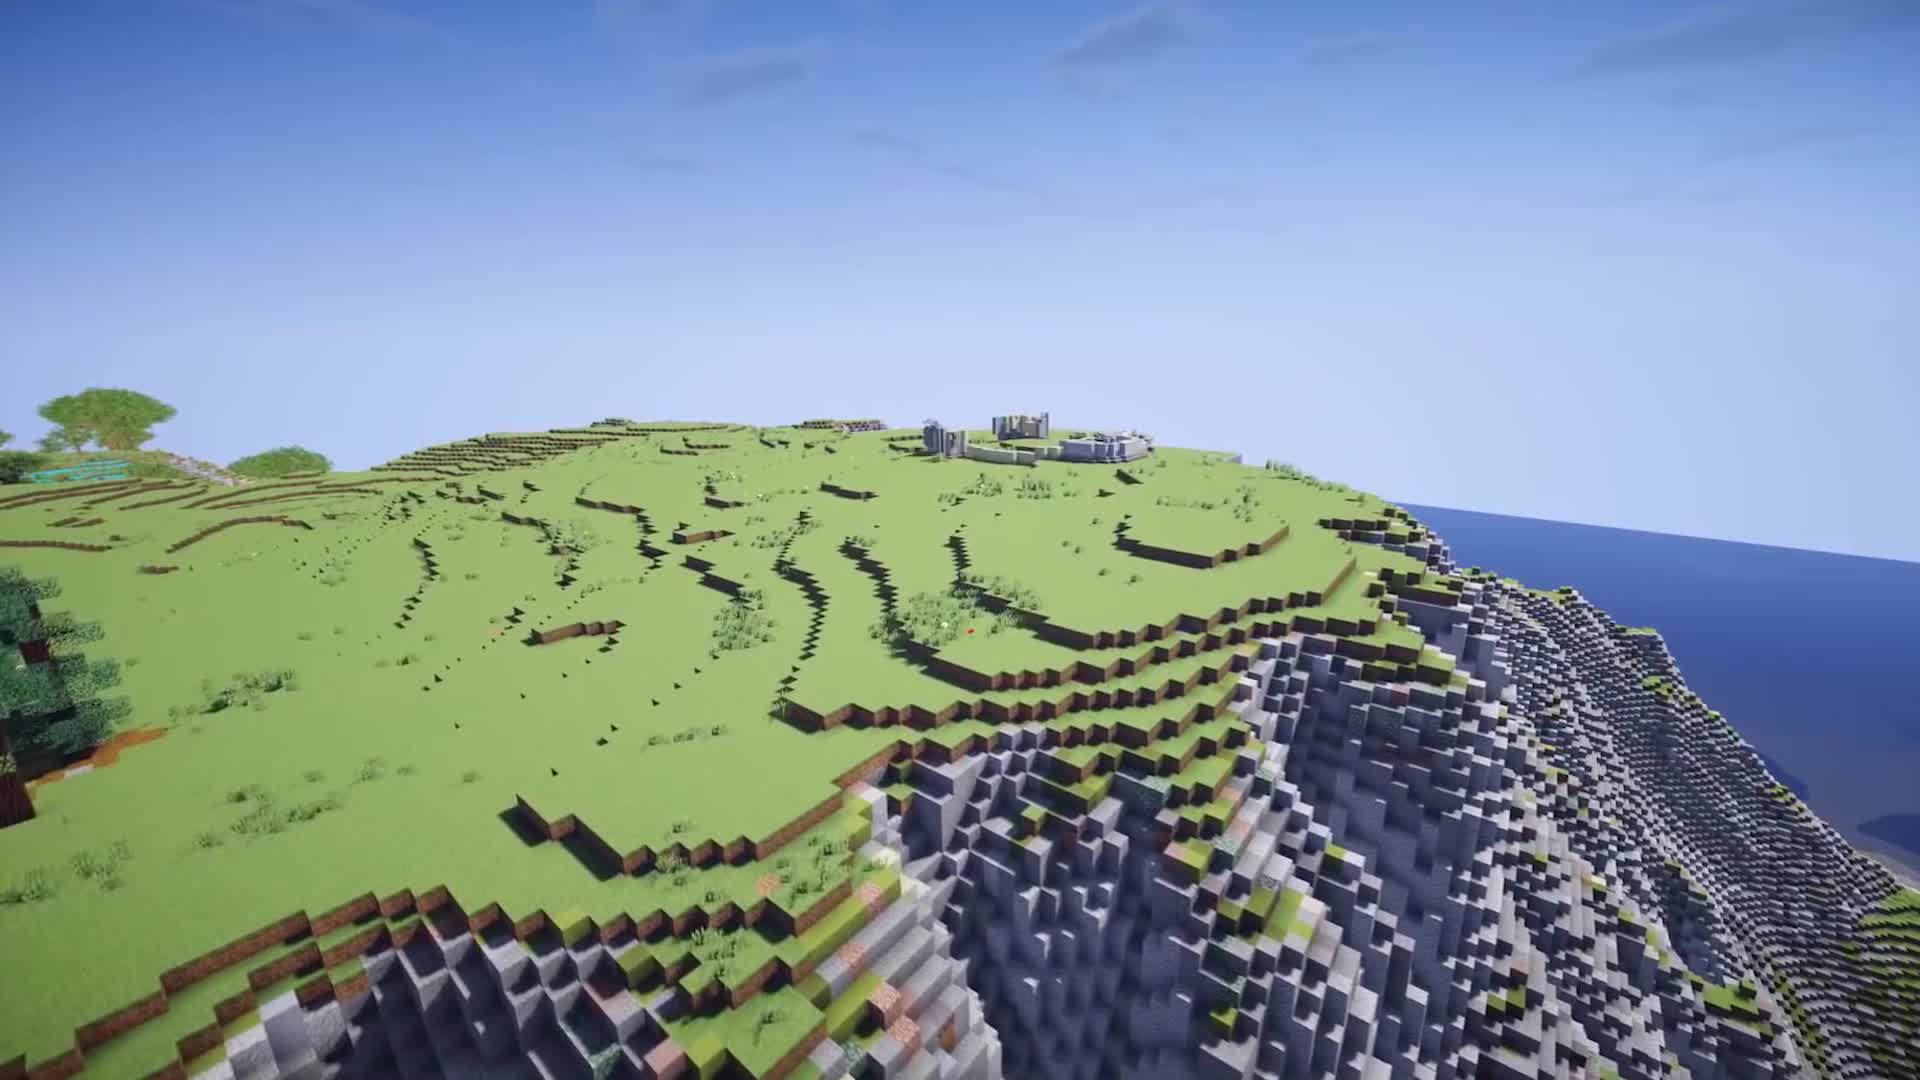 minecraft, timelapse, Incredible Minecraft build in timelapse GIFs